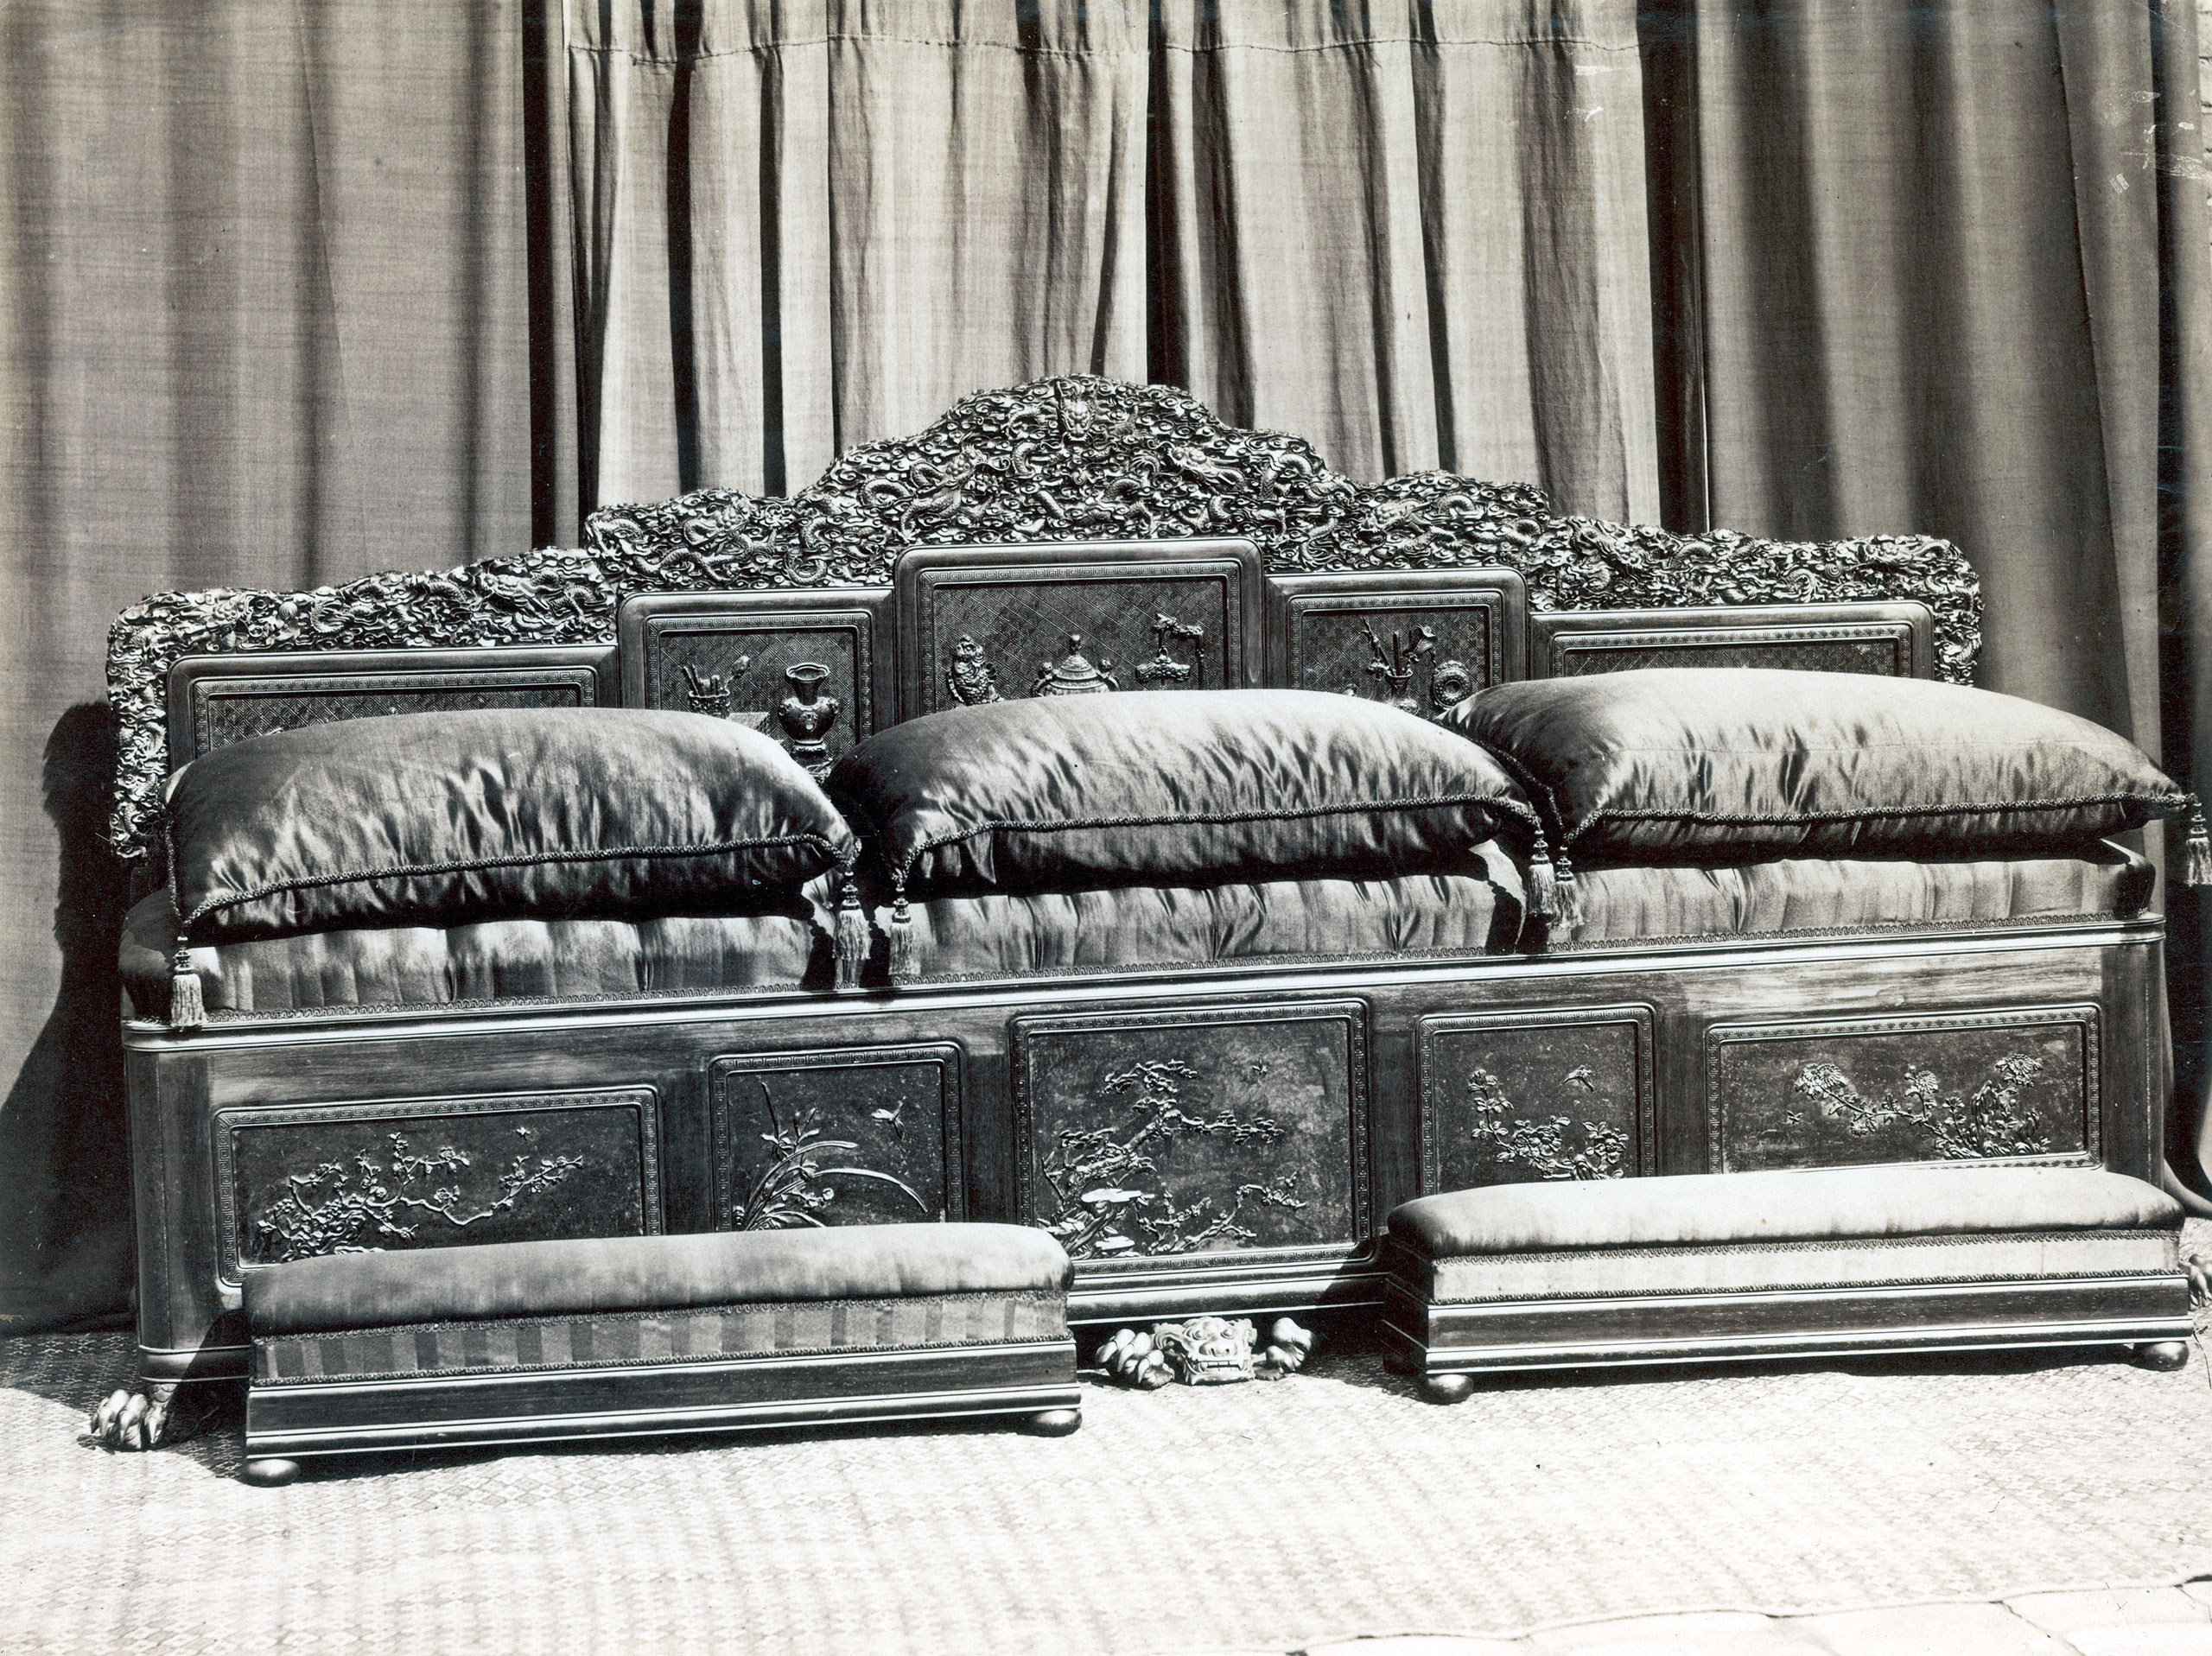 An ornately carved throne and matching footstools from the Summer Palace, Peking, Bejing, 1870.